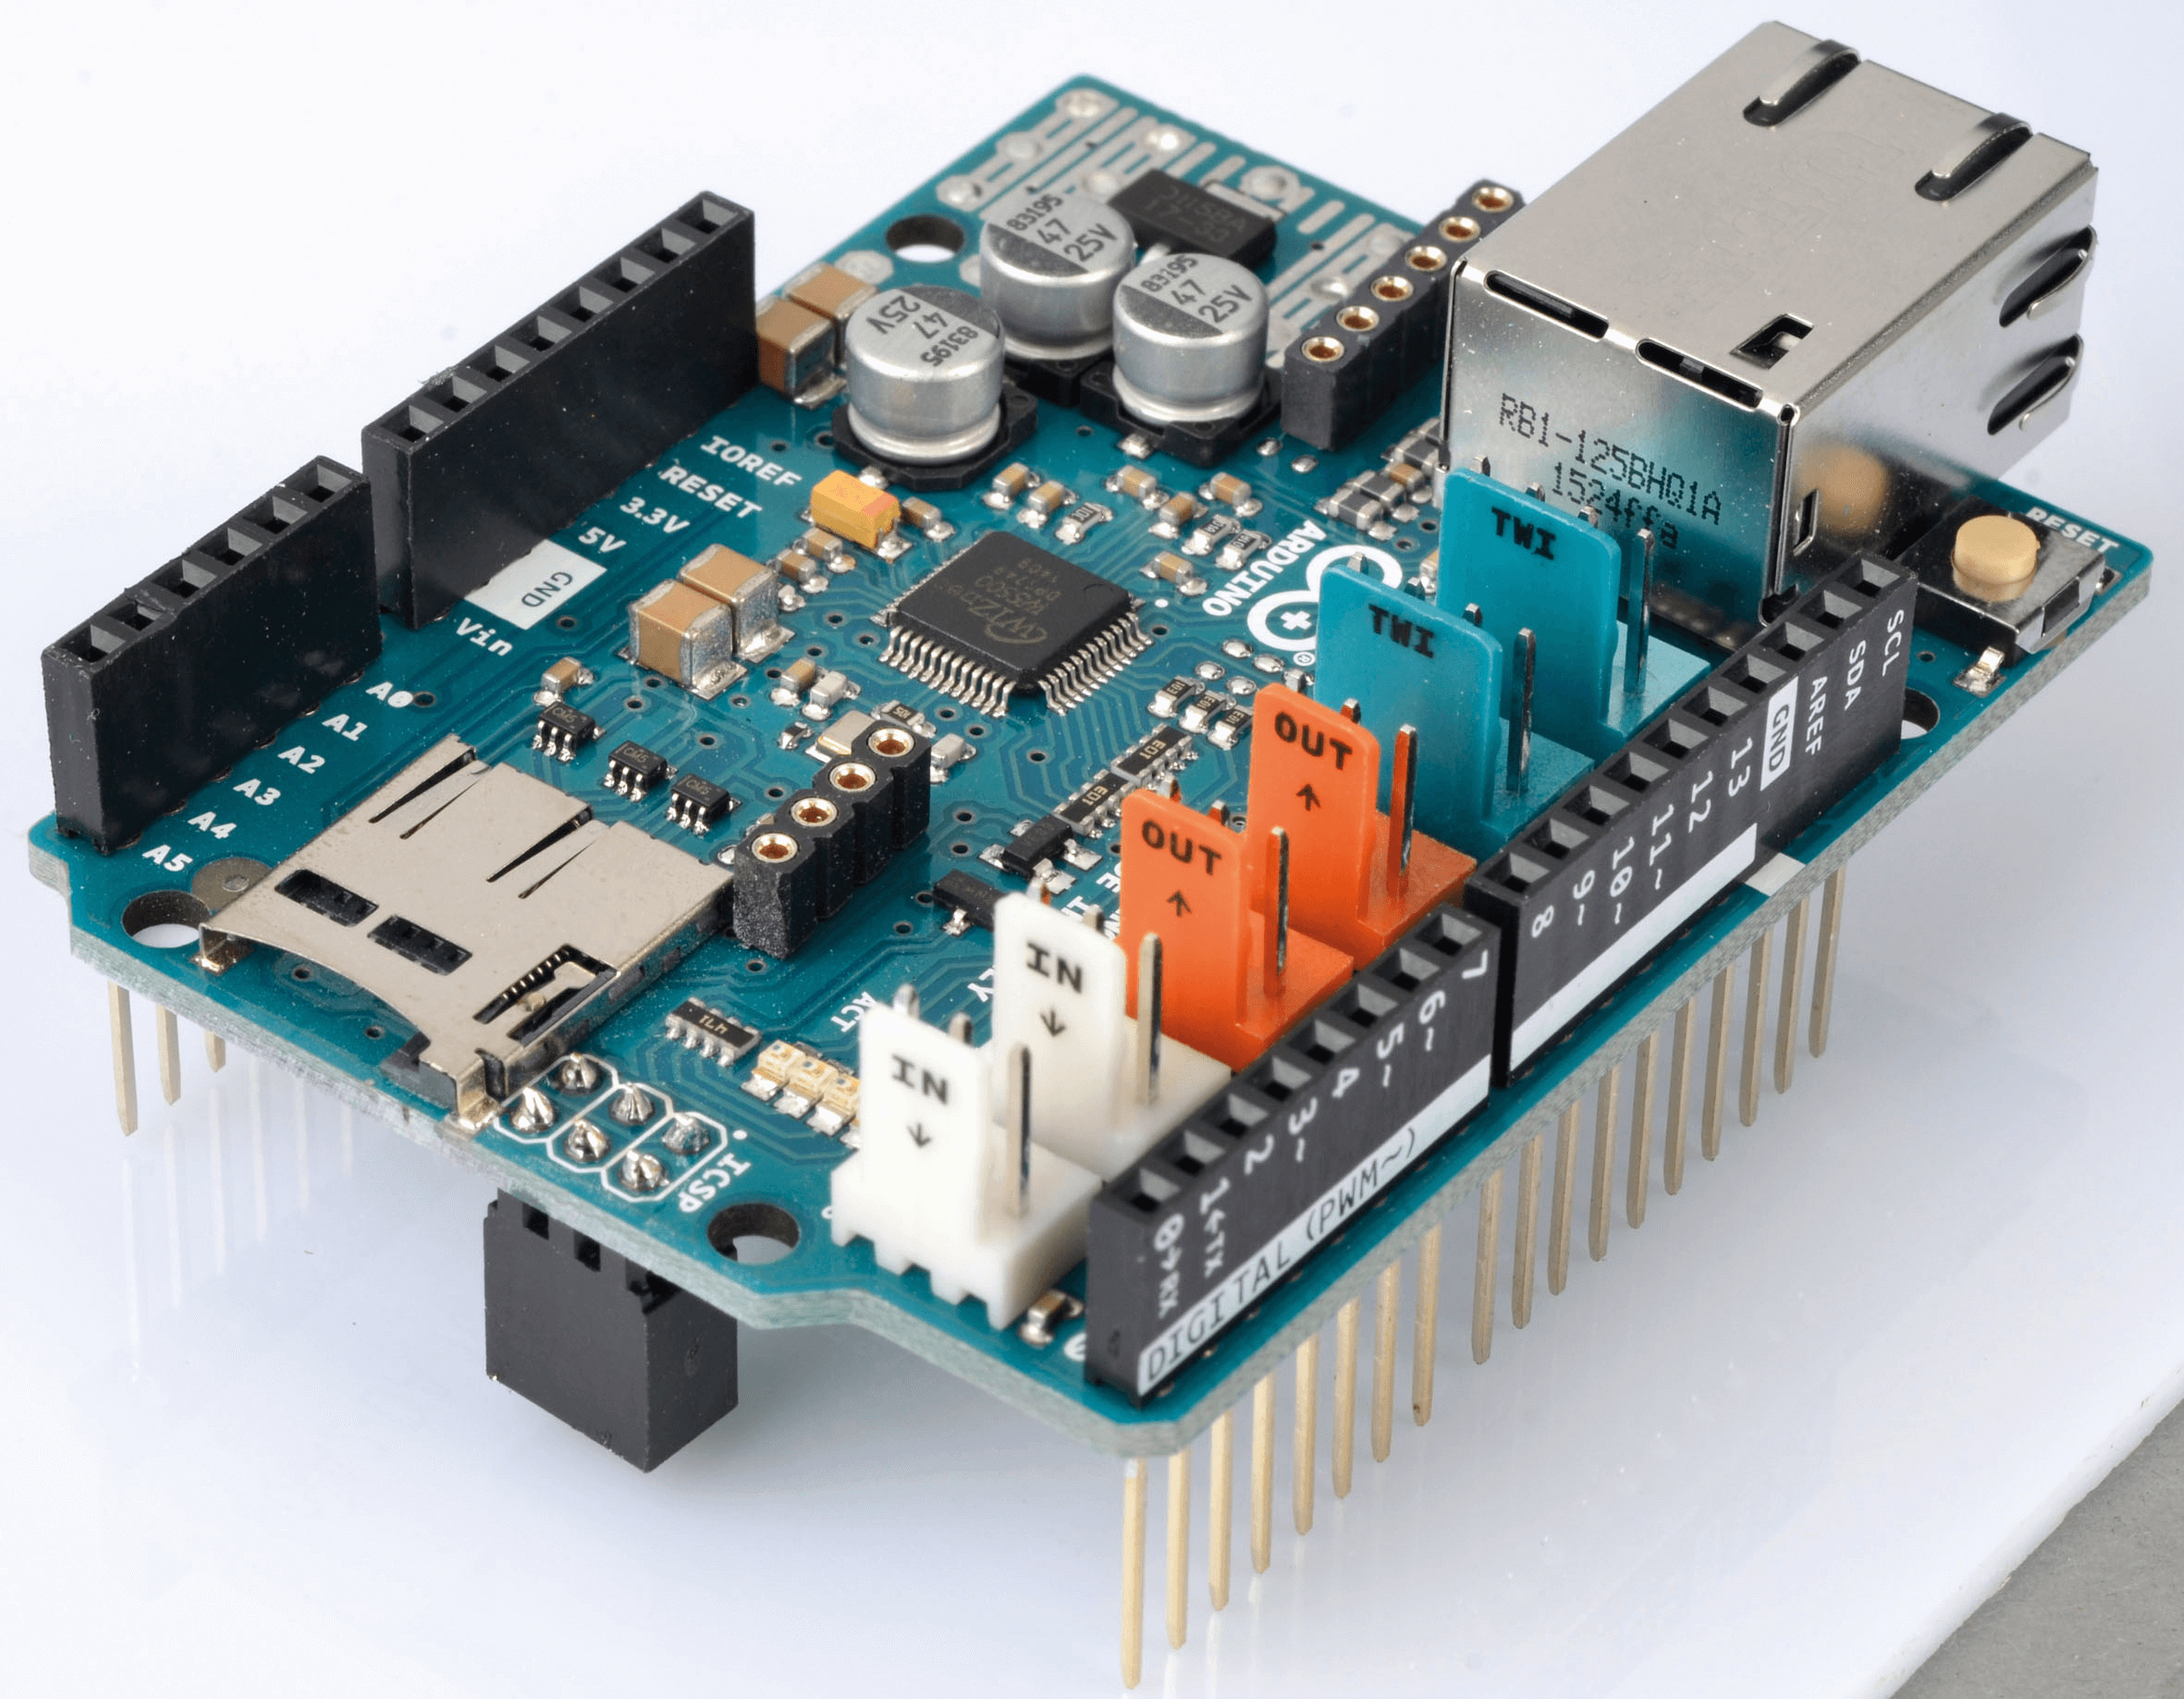 Using Arduino as a simple Web Server along with Ethernet